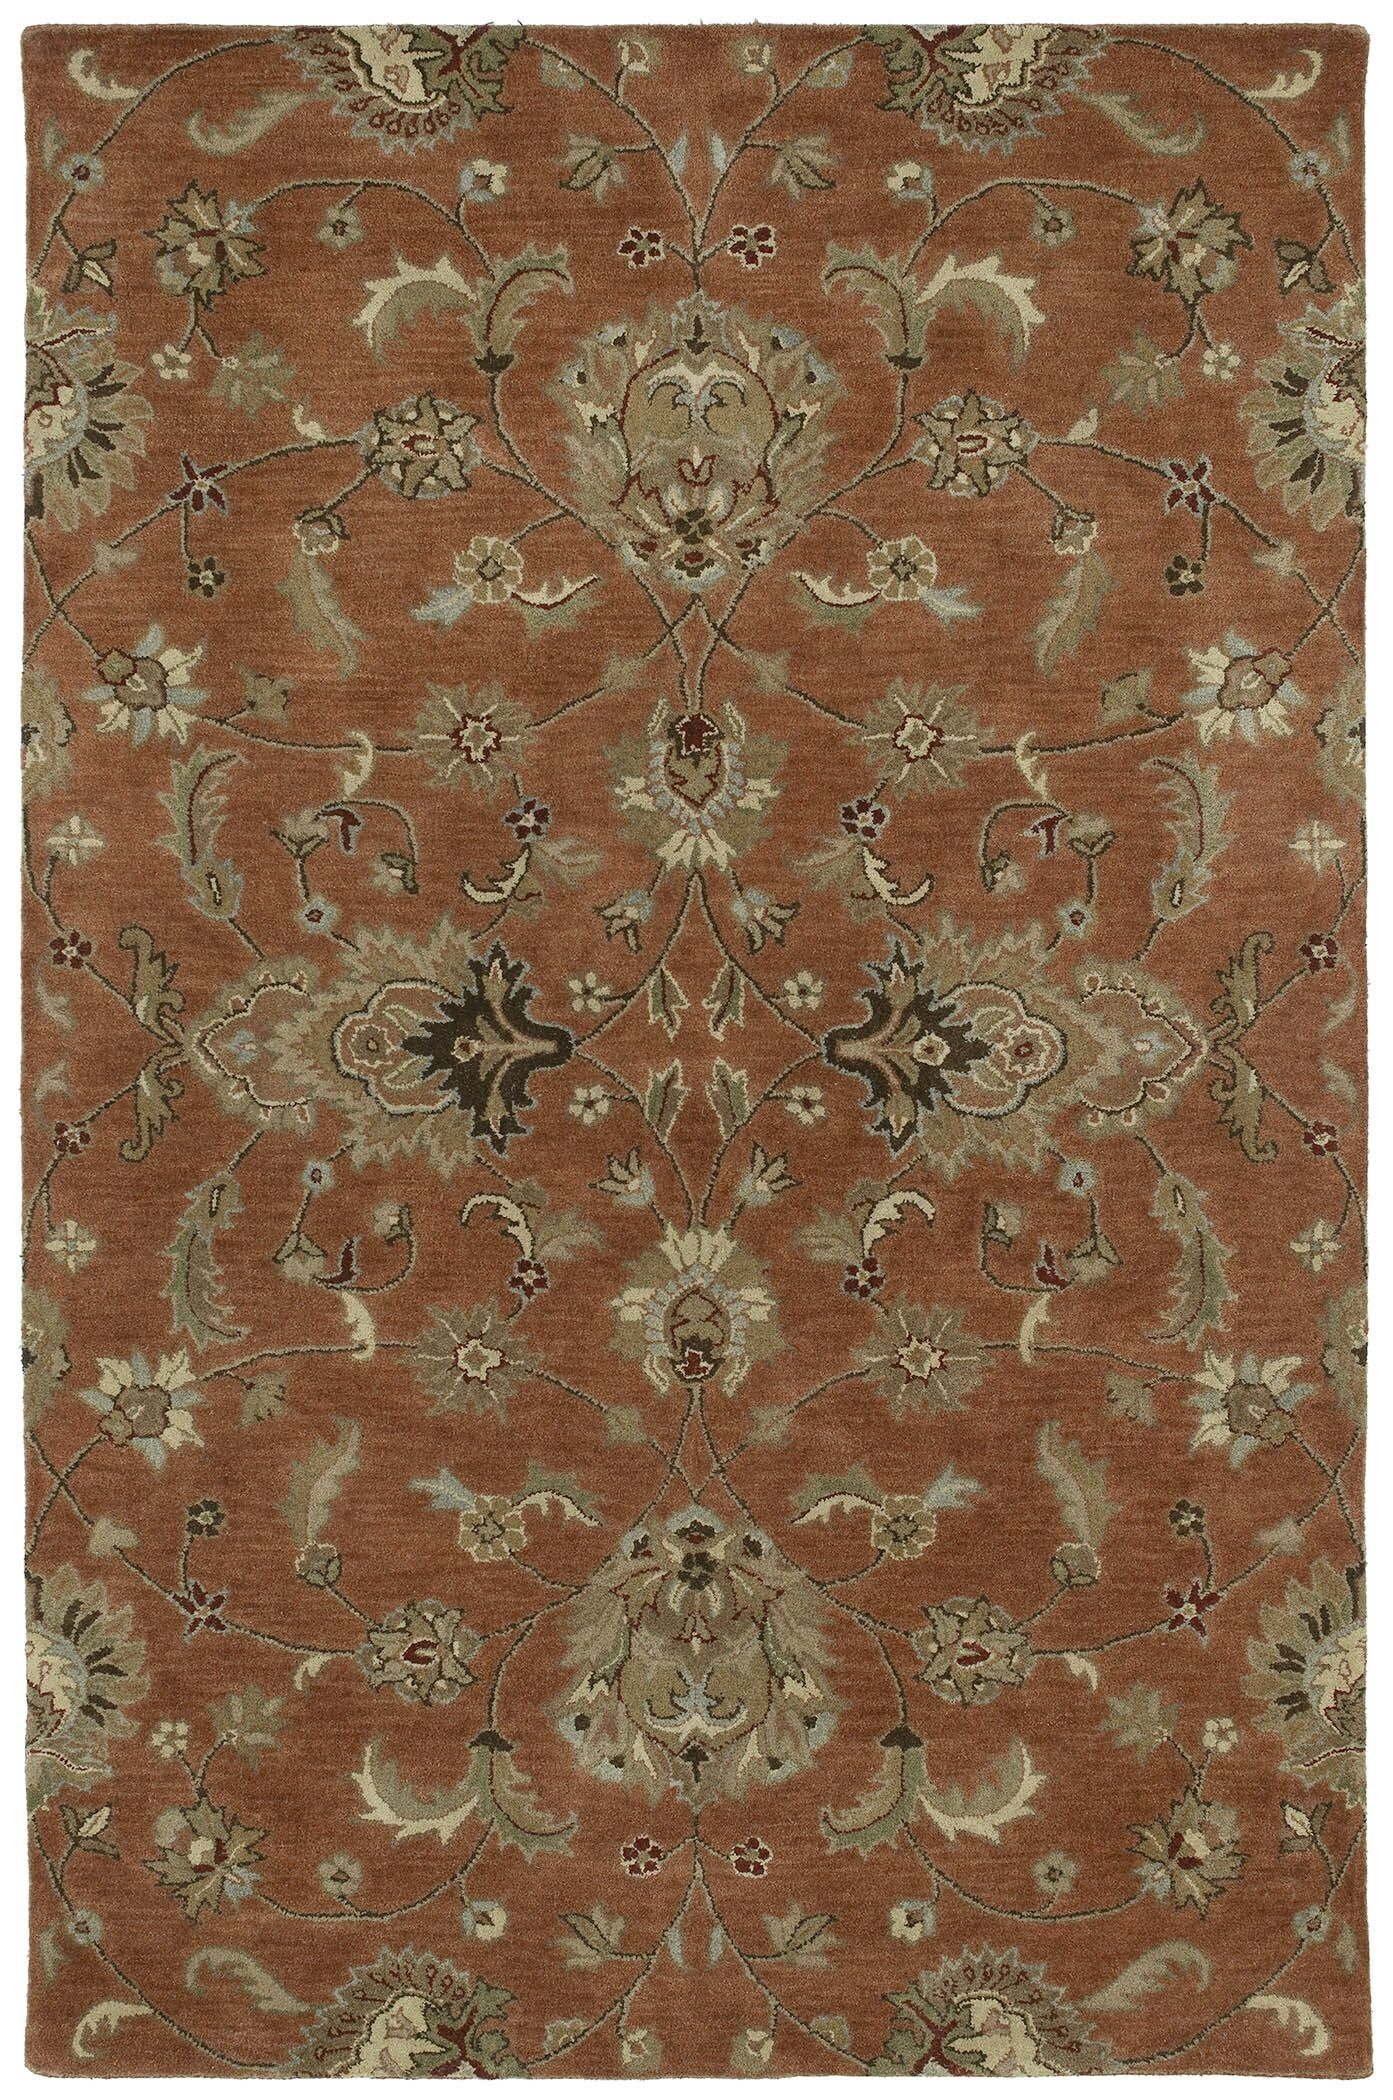 Cortland Copper Europa Area Rug Rug Size: Rectangle 5' x 7'9